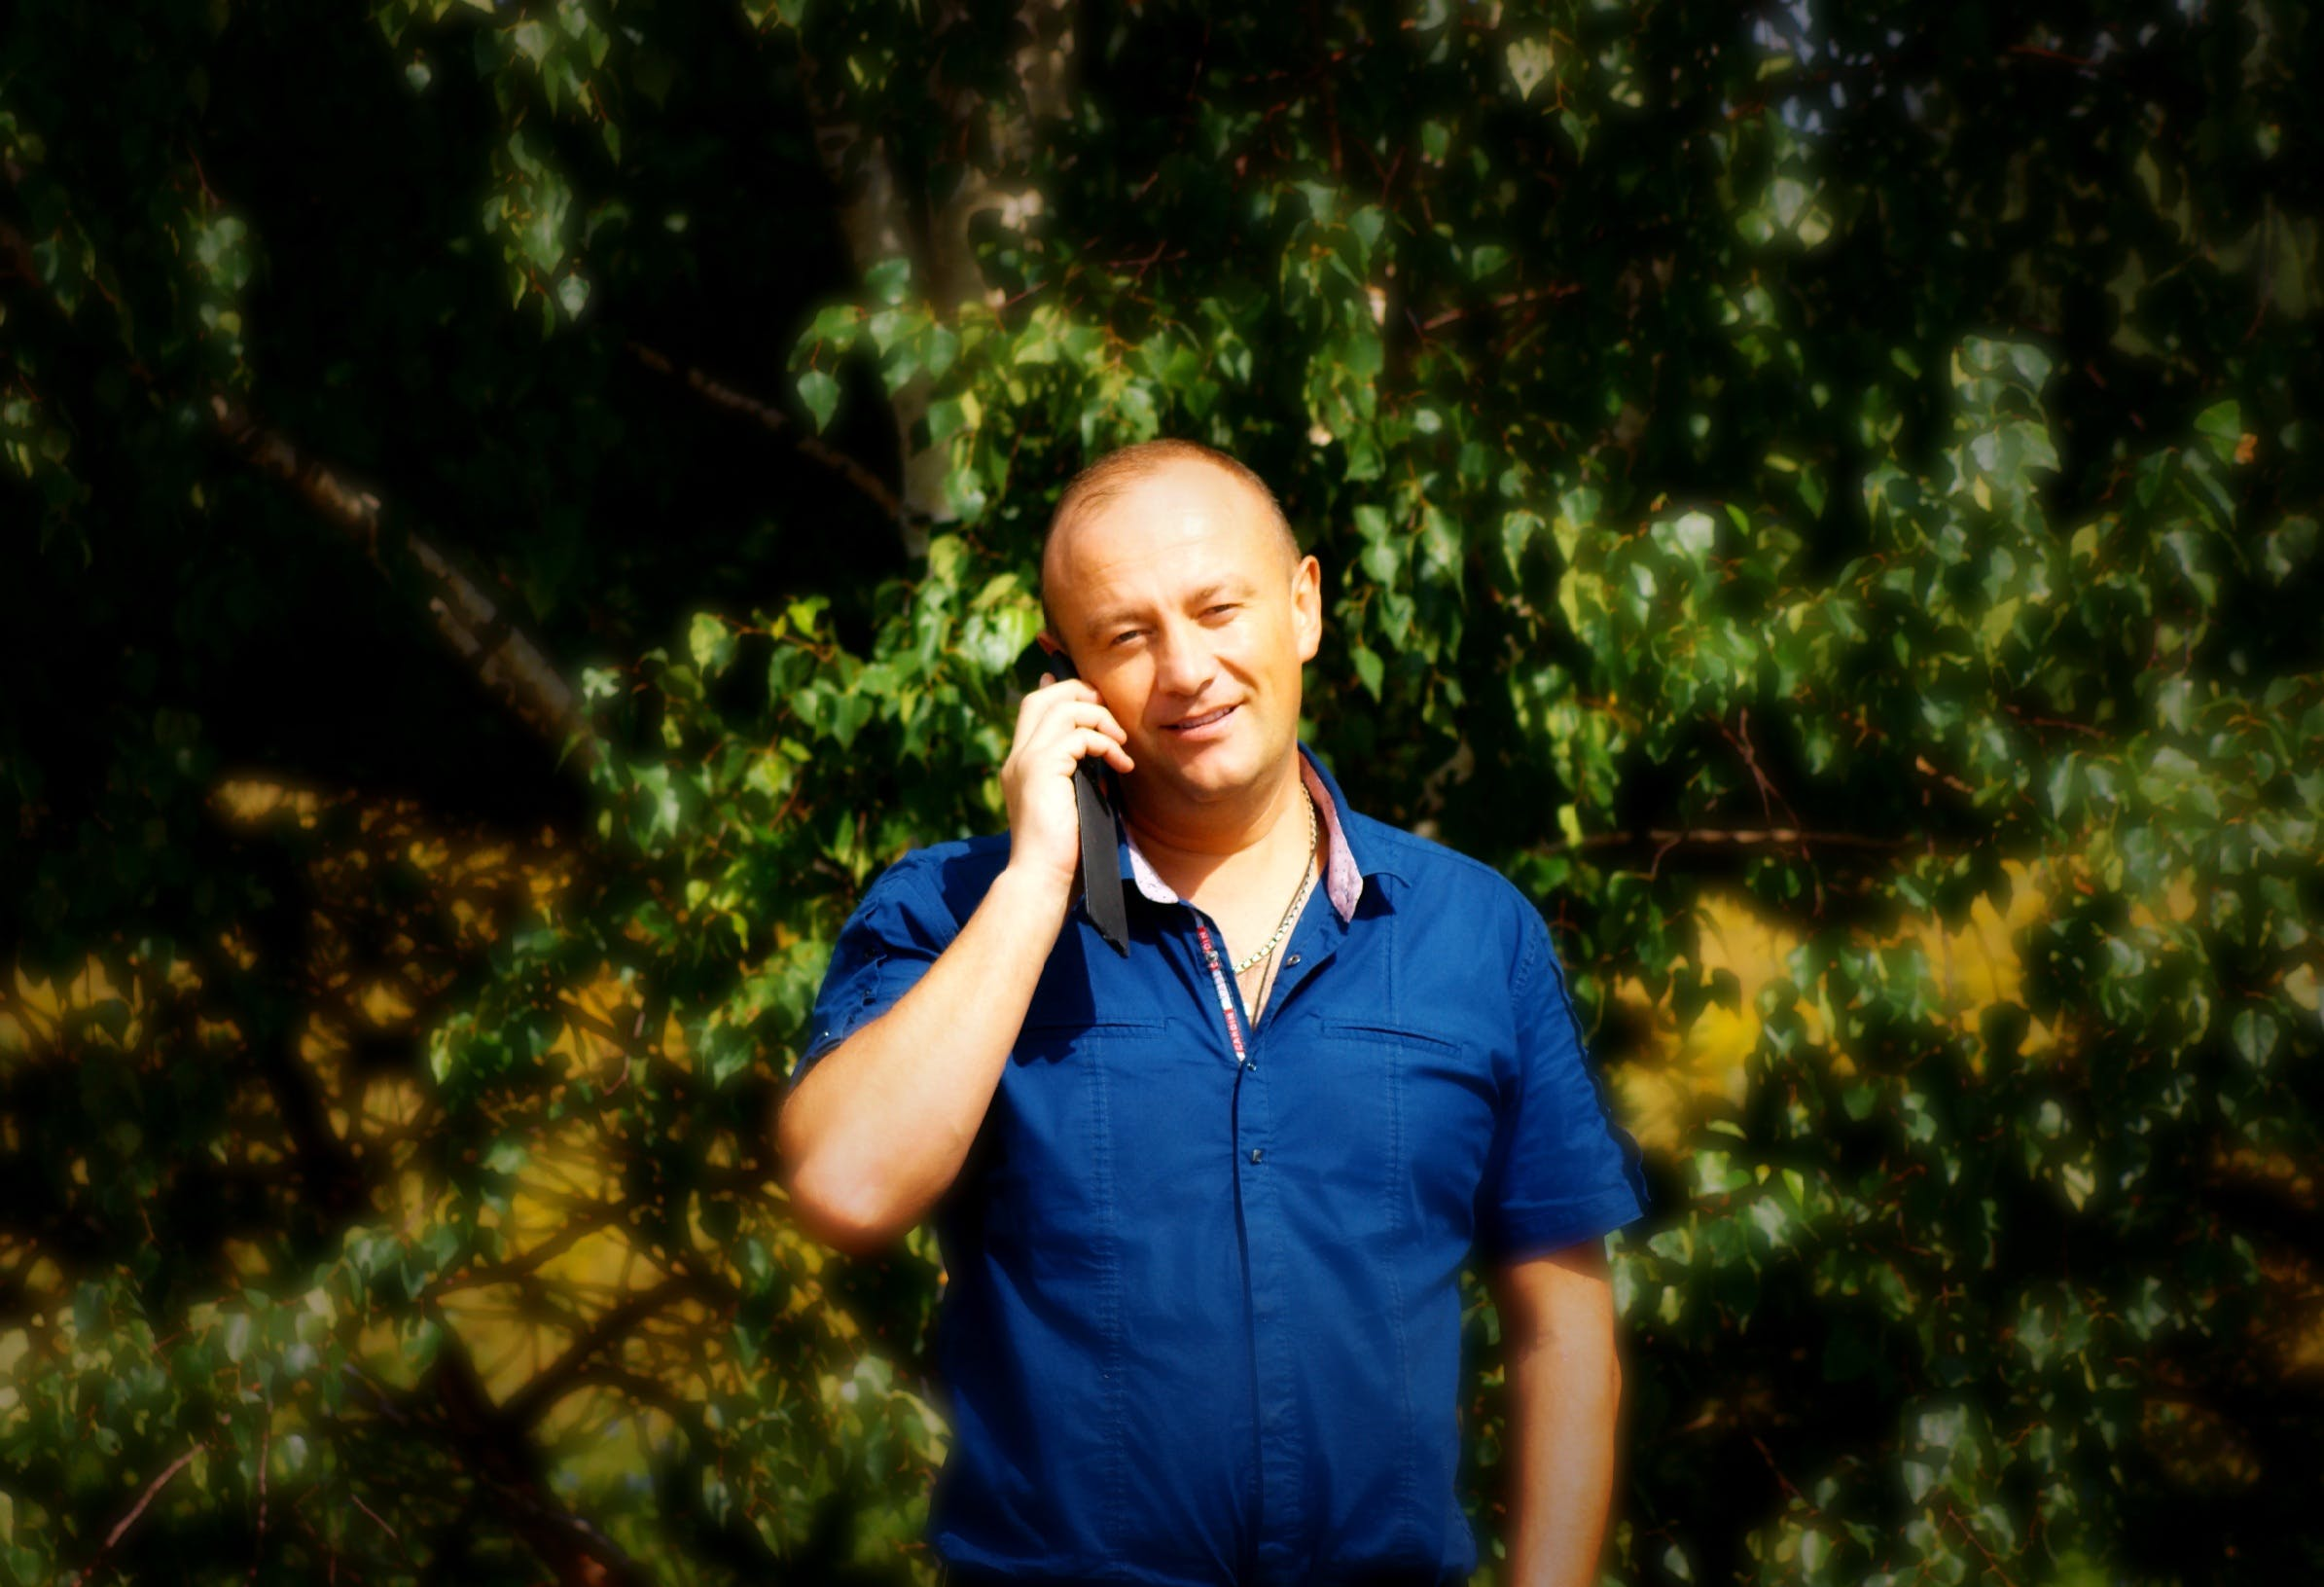 Free stock photo of nature, man, phone, talking